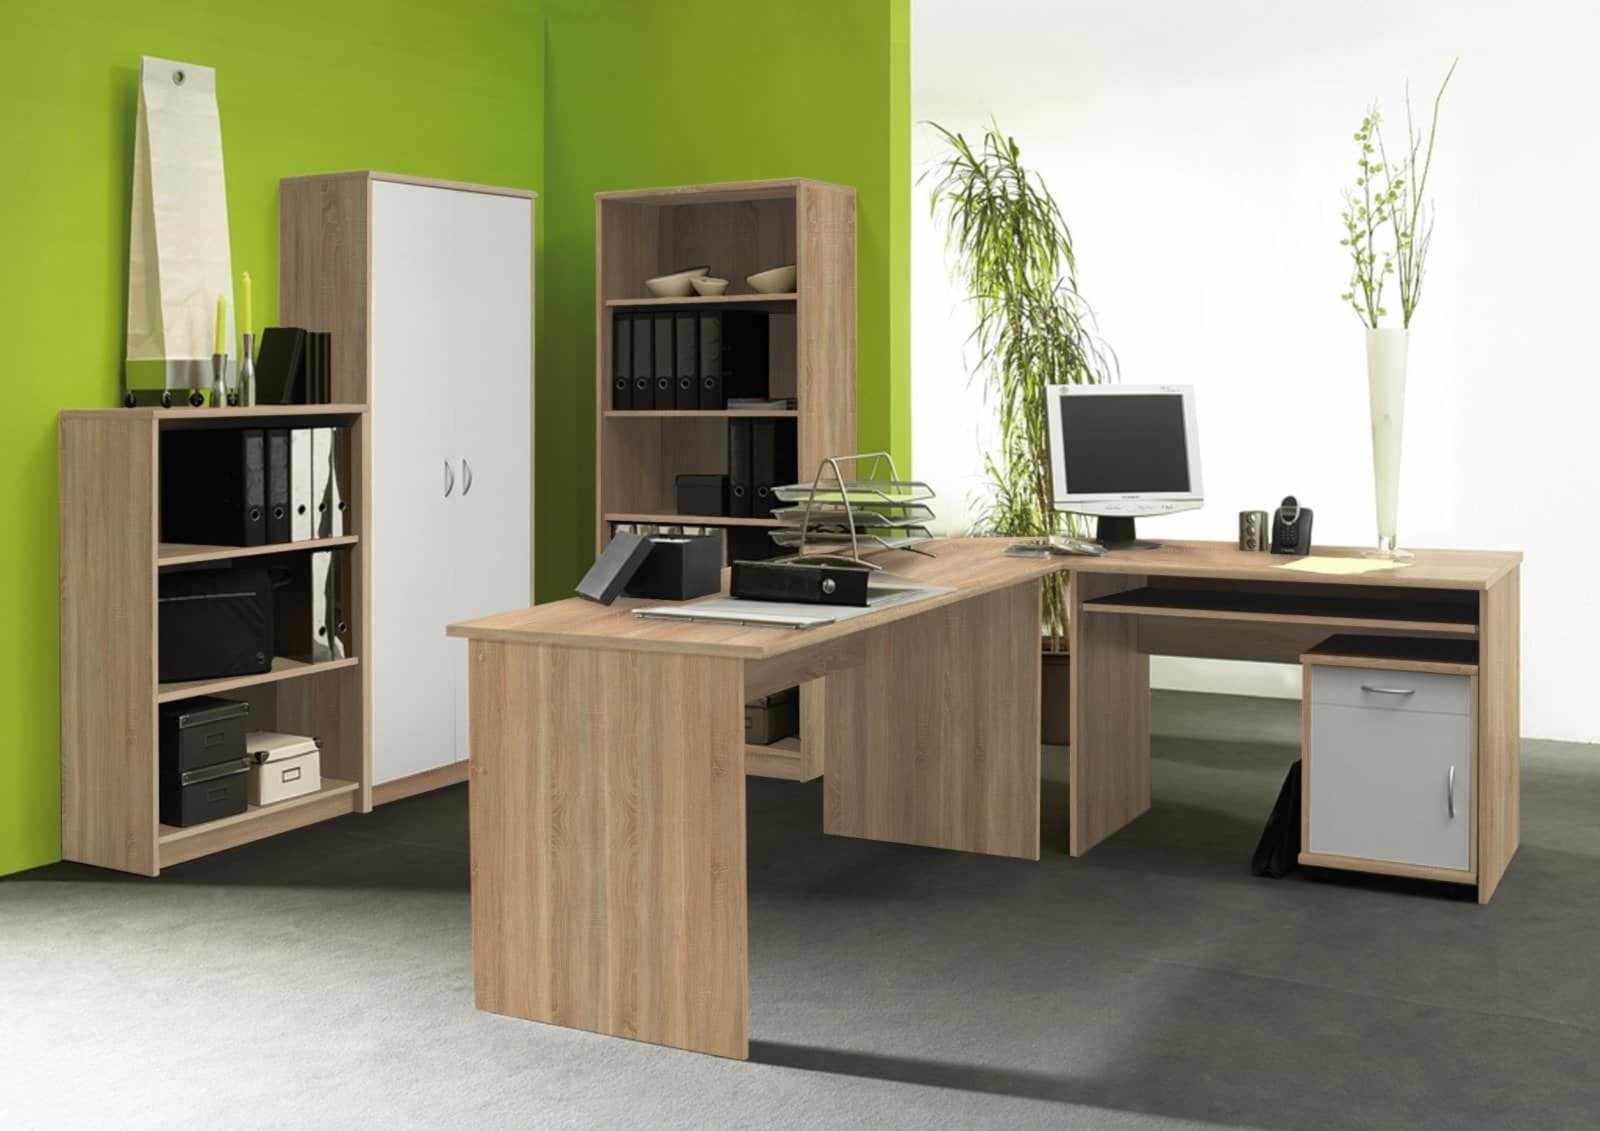 Buromobel Set Office Compact Sonoma Eiche Weiss Buro